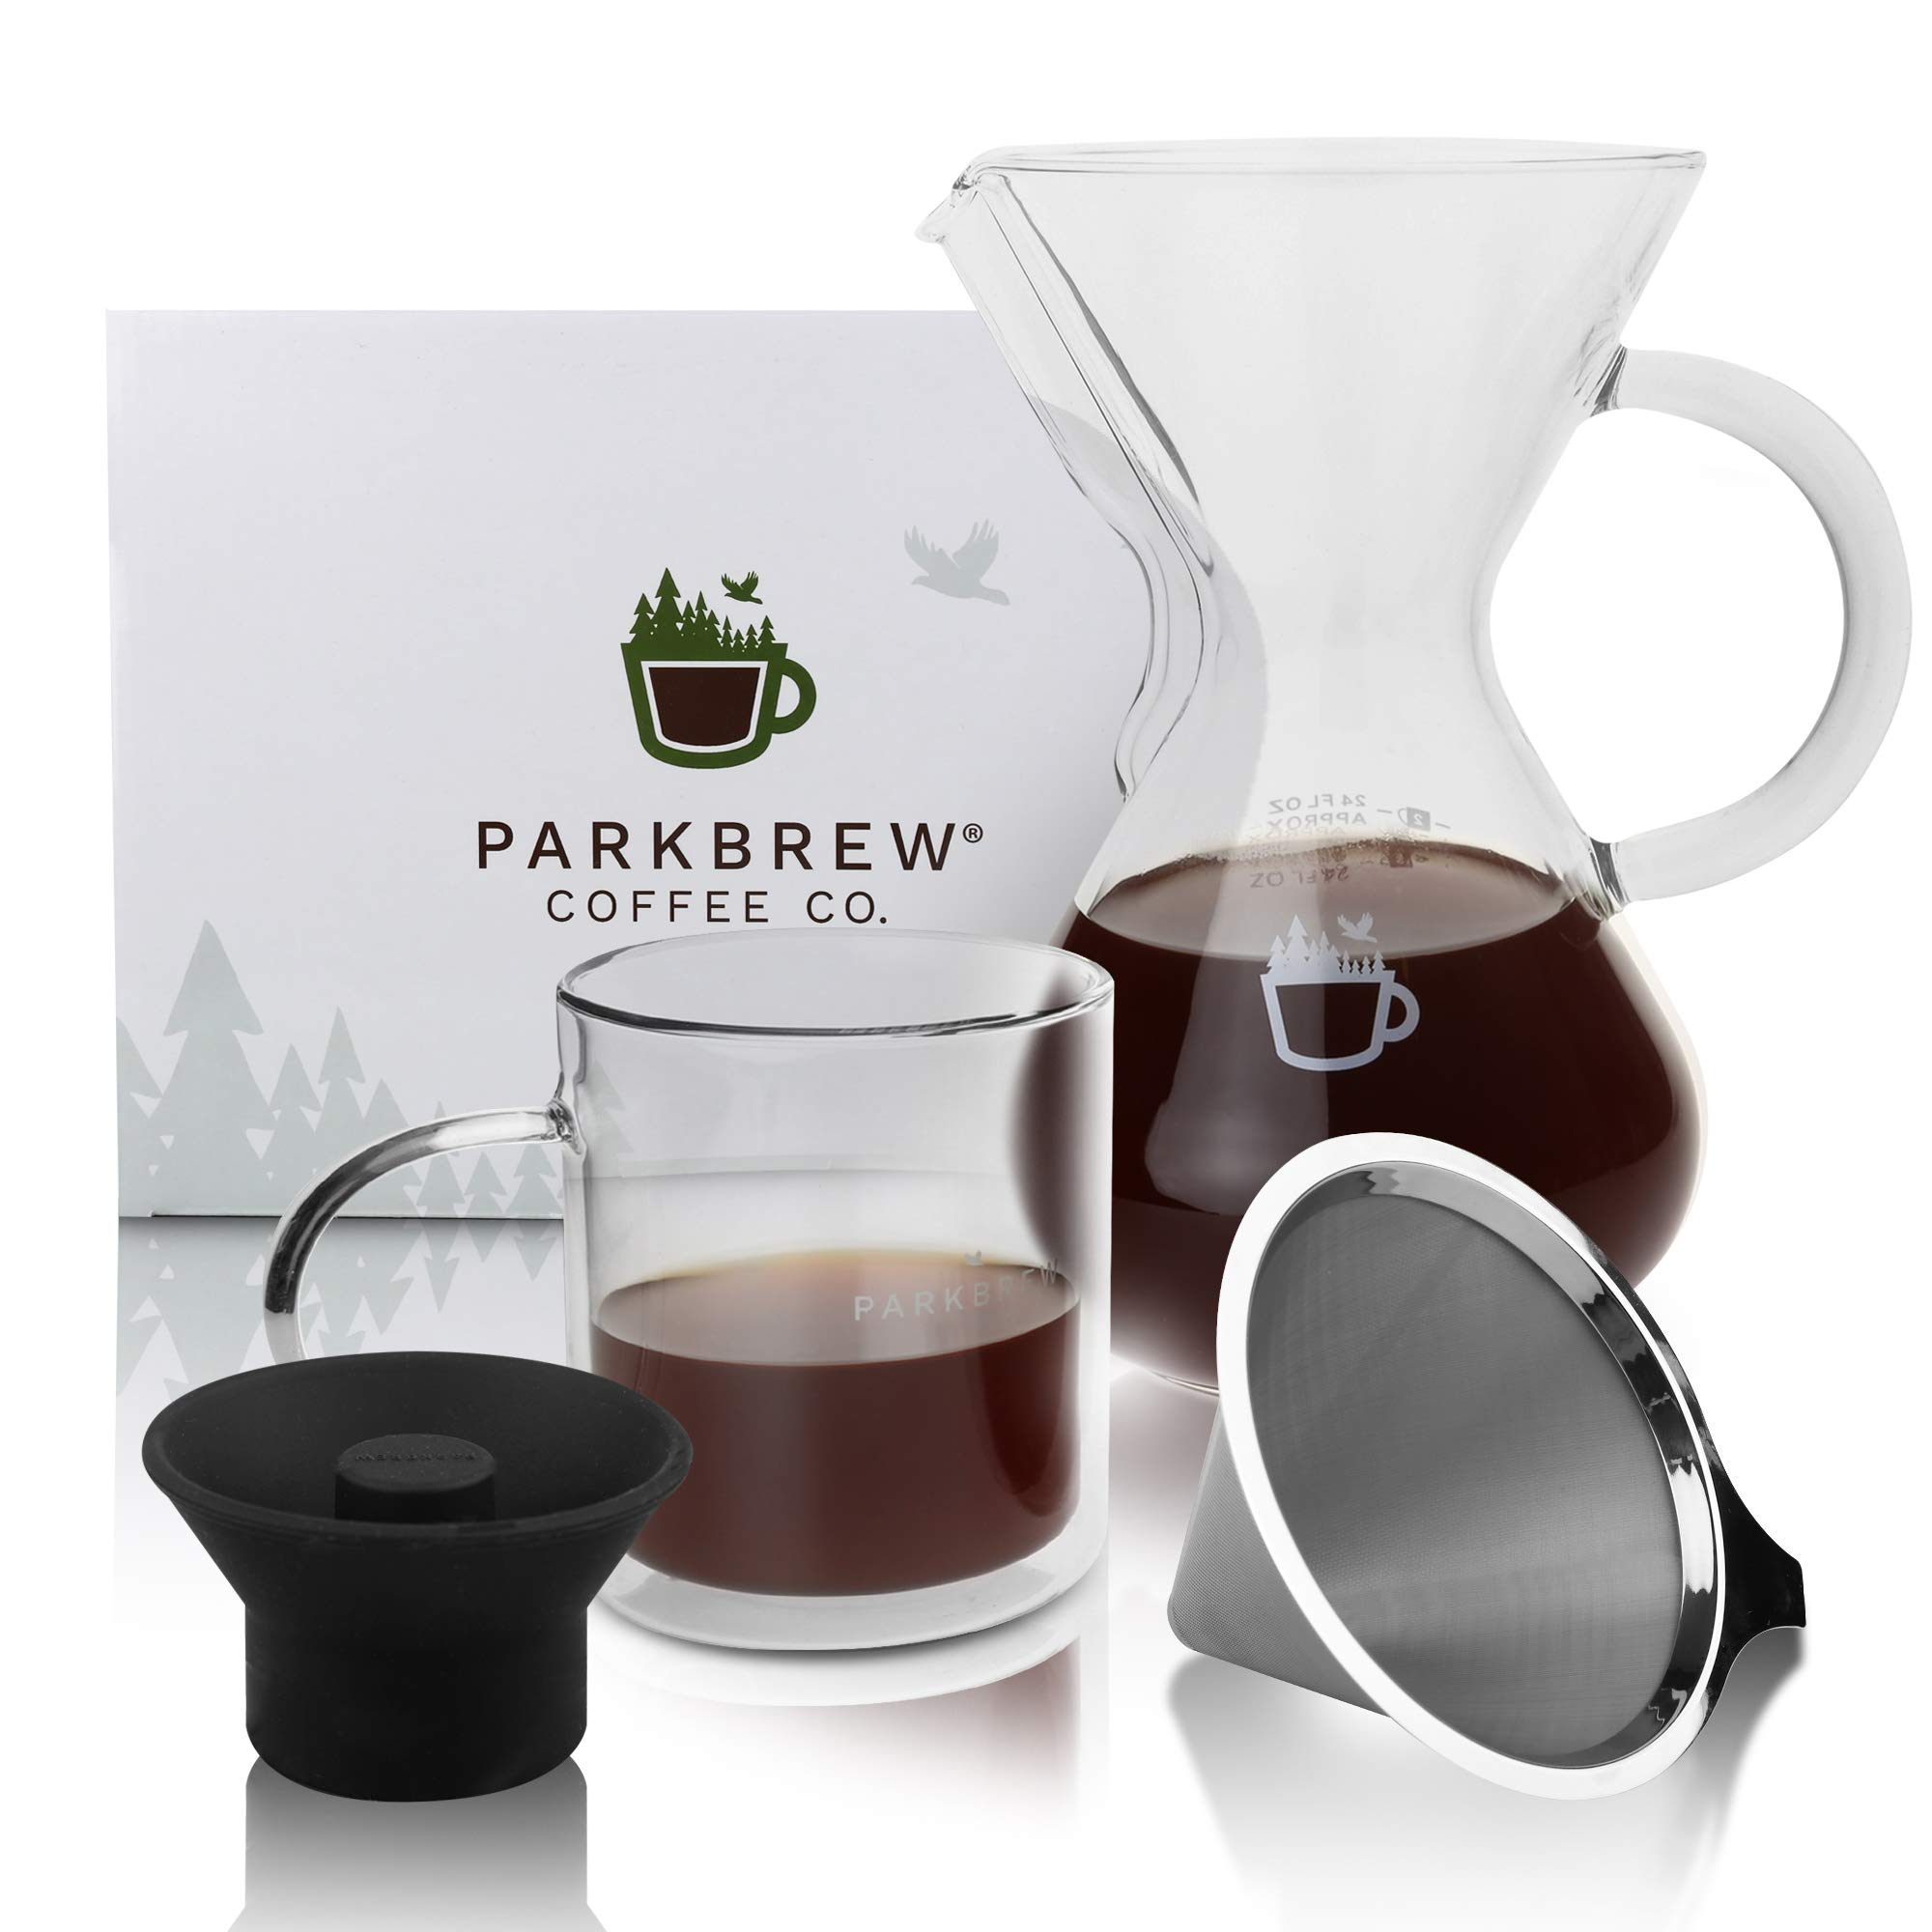 ParkBrew Pour Over Coffee Maker - kit includes coffee carafe (up to 27 fl. oz.), reusable coffee filter or coffee dripper, carafe lid, and double wall glass coffee mug